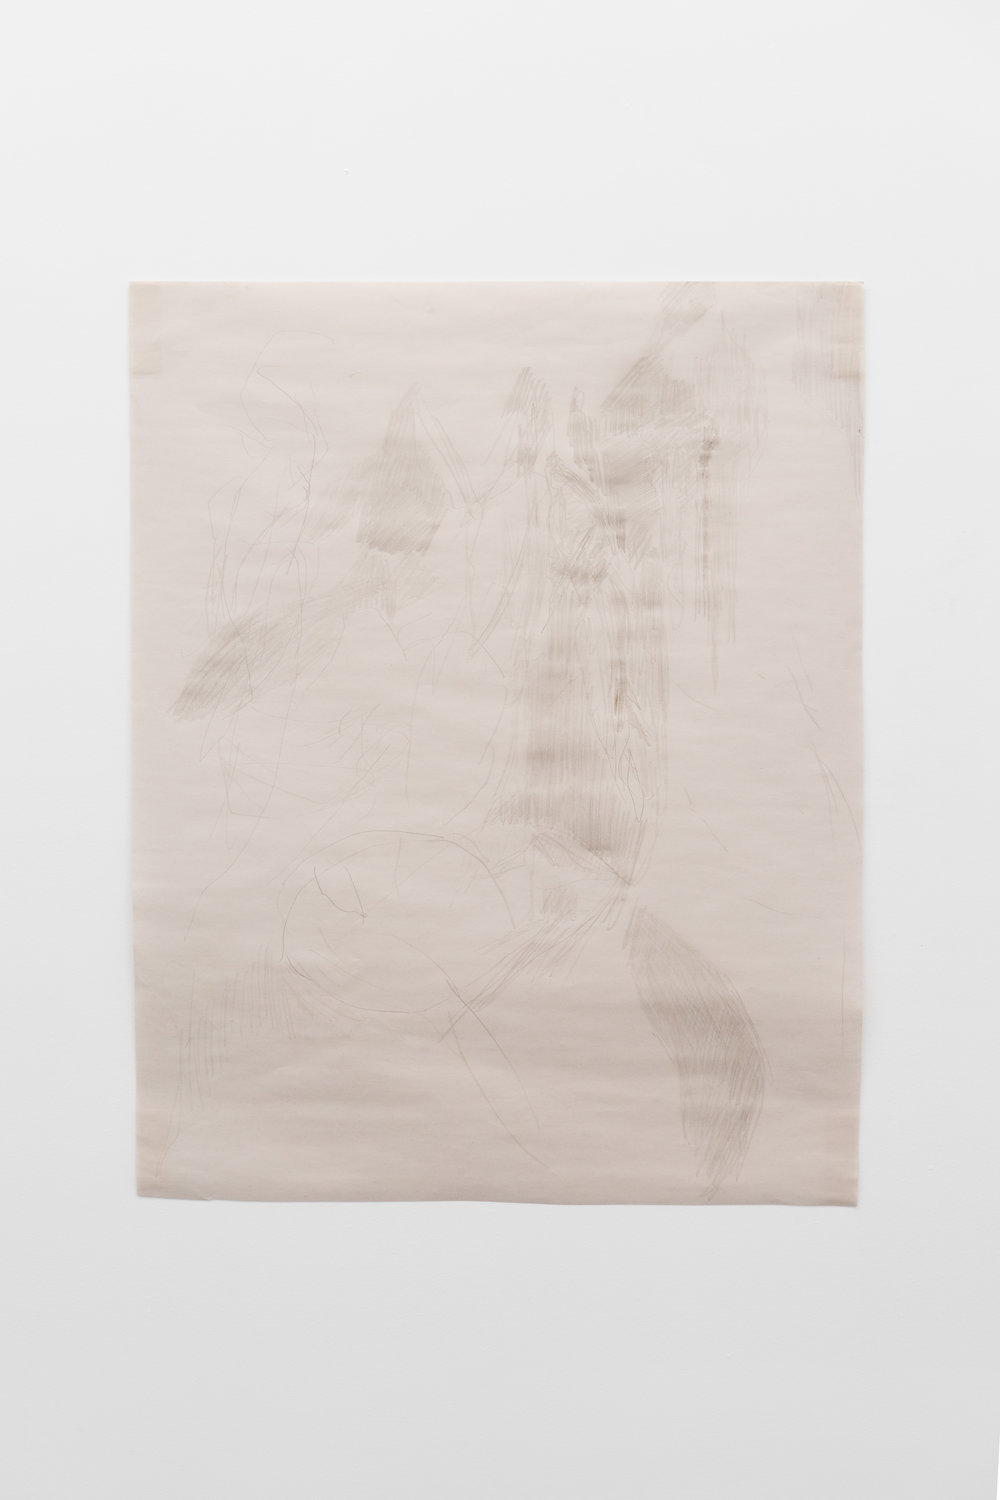 Tim Bucolic,  surrounding situation with dancers , 2018  Graphite on butcher's paper, 61 x 49cm  Image credit: Ruben Bull-milne